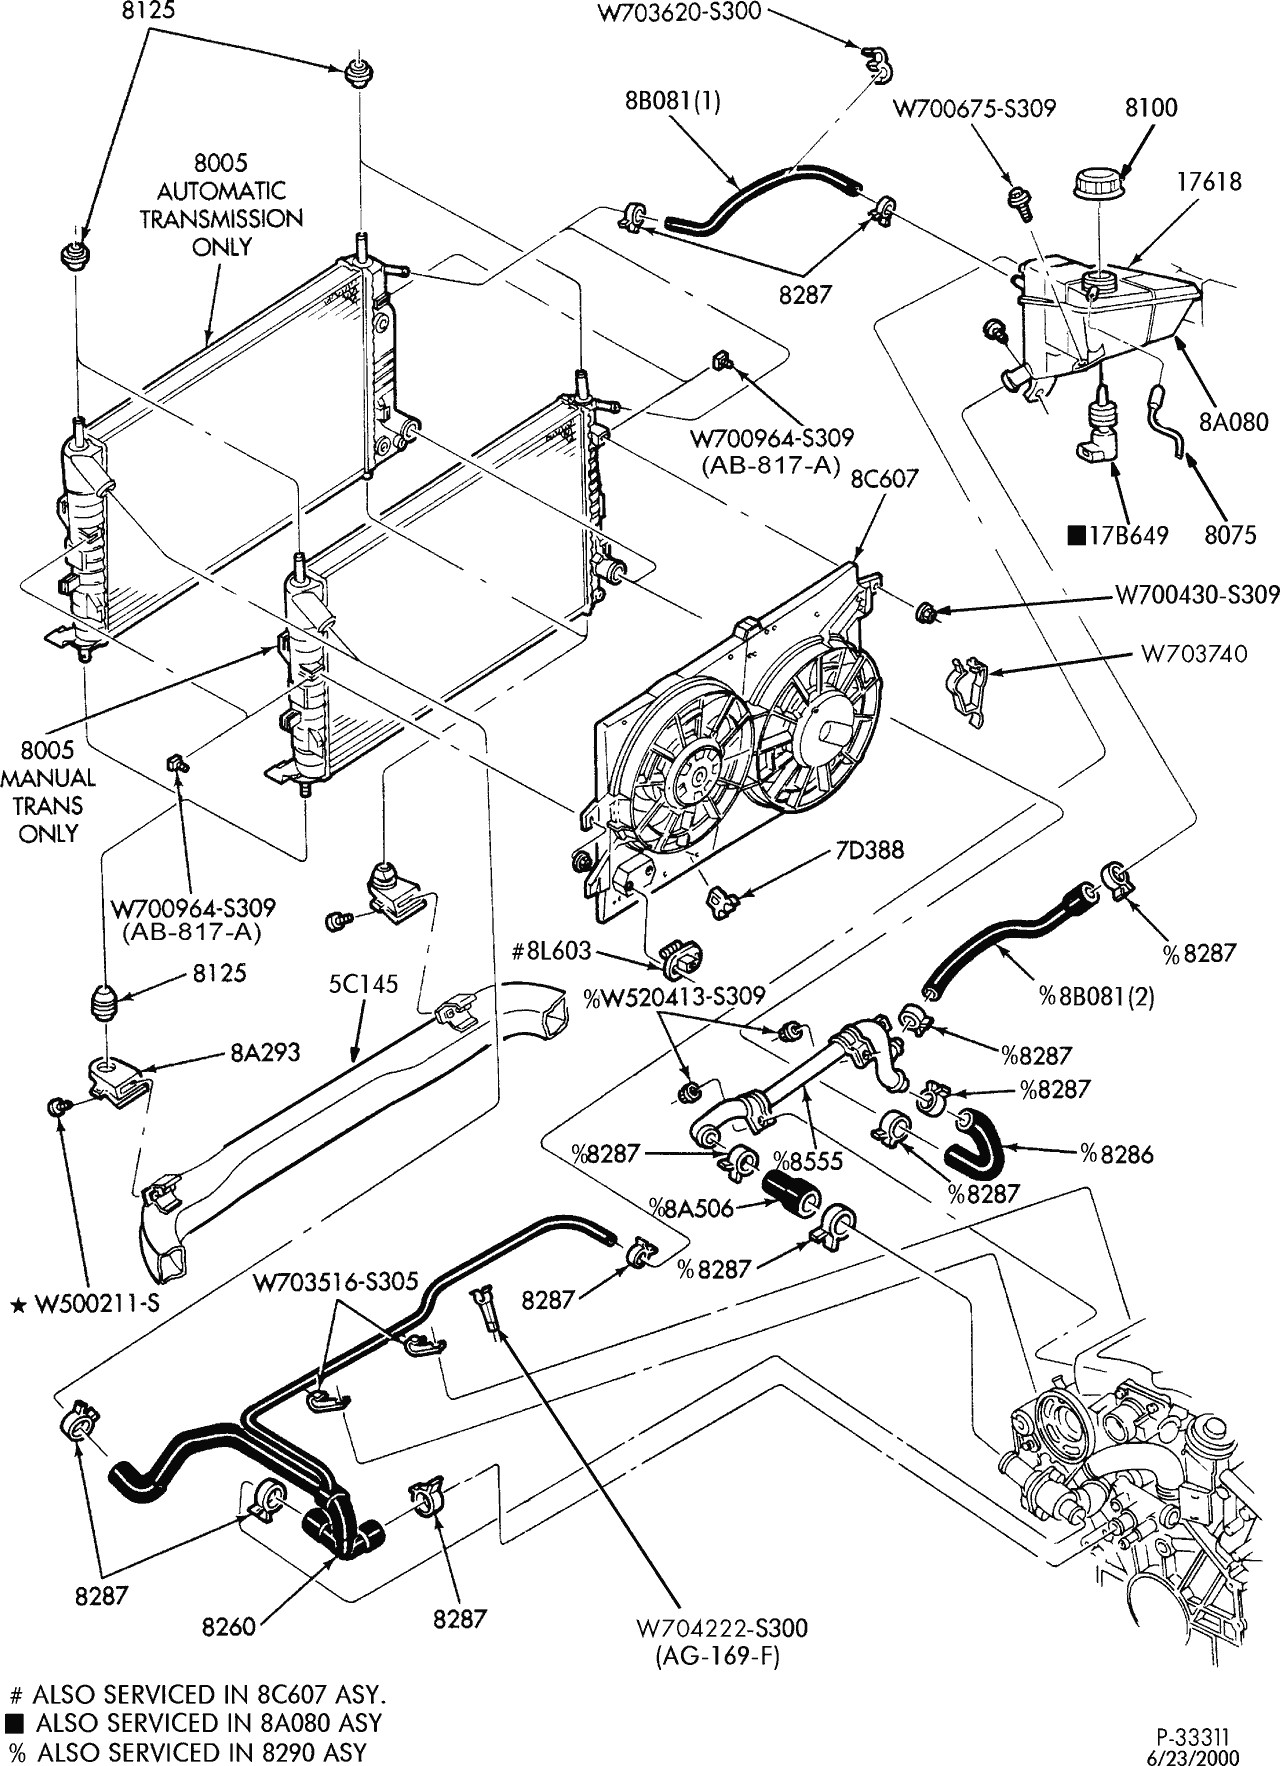 DIAGRAM] 1968 Mercury Cougar Engine Diagram FULL Version HD Quality Engine  Diagram - RITUALDIAGRAMS.DOMENICANIPISTOIA.IT | 99 Mercury Cougar Engine Diagram |  | ritualdiagrams.domenicanipistoia.it